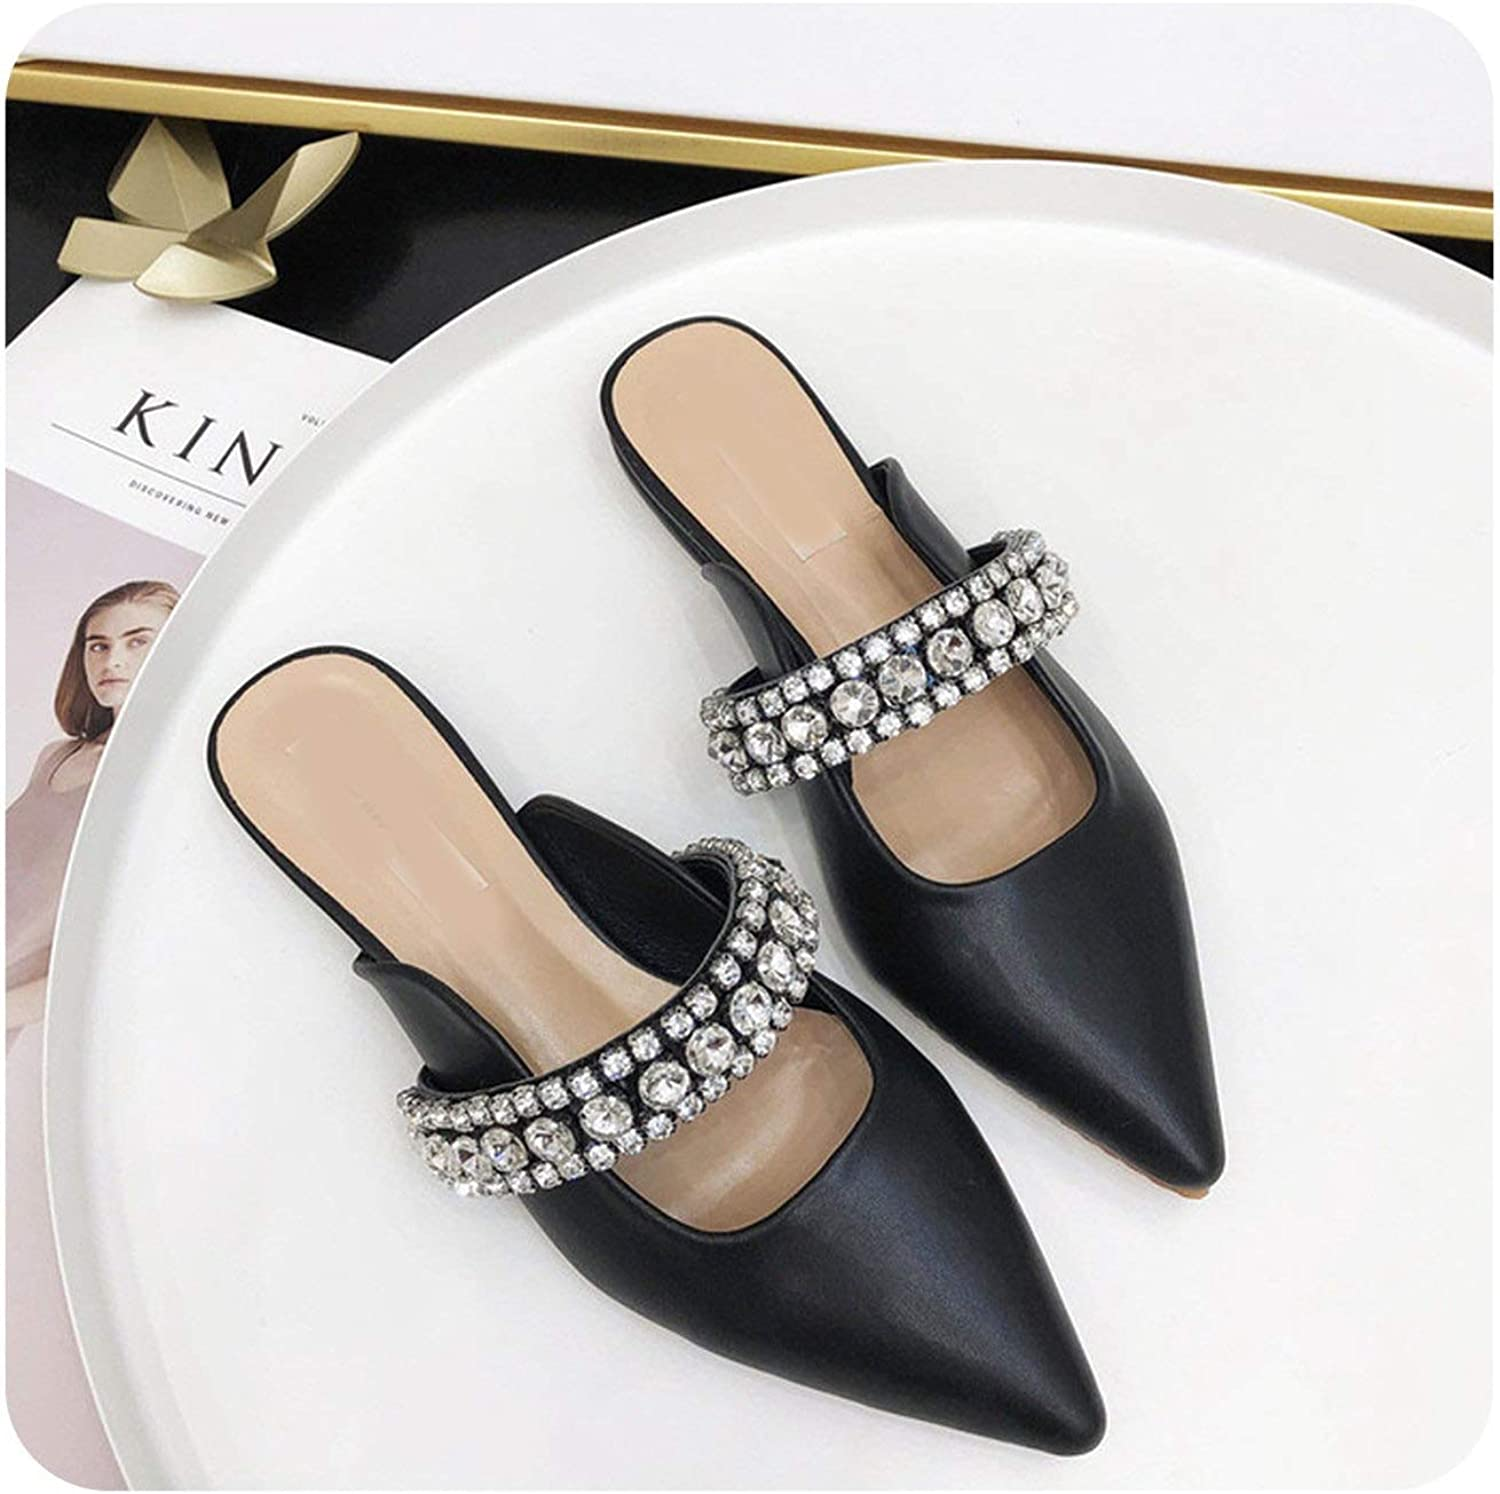 END GAME Wellwak Luxury Slippers Mules shoes Crystals Slides Ladies Dress shoes Woman Slippers